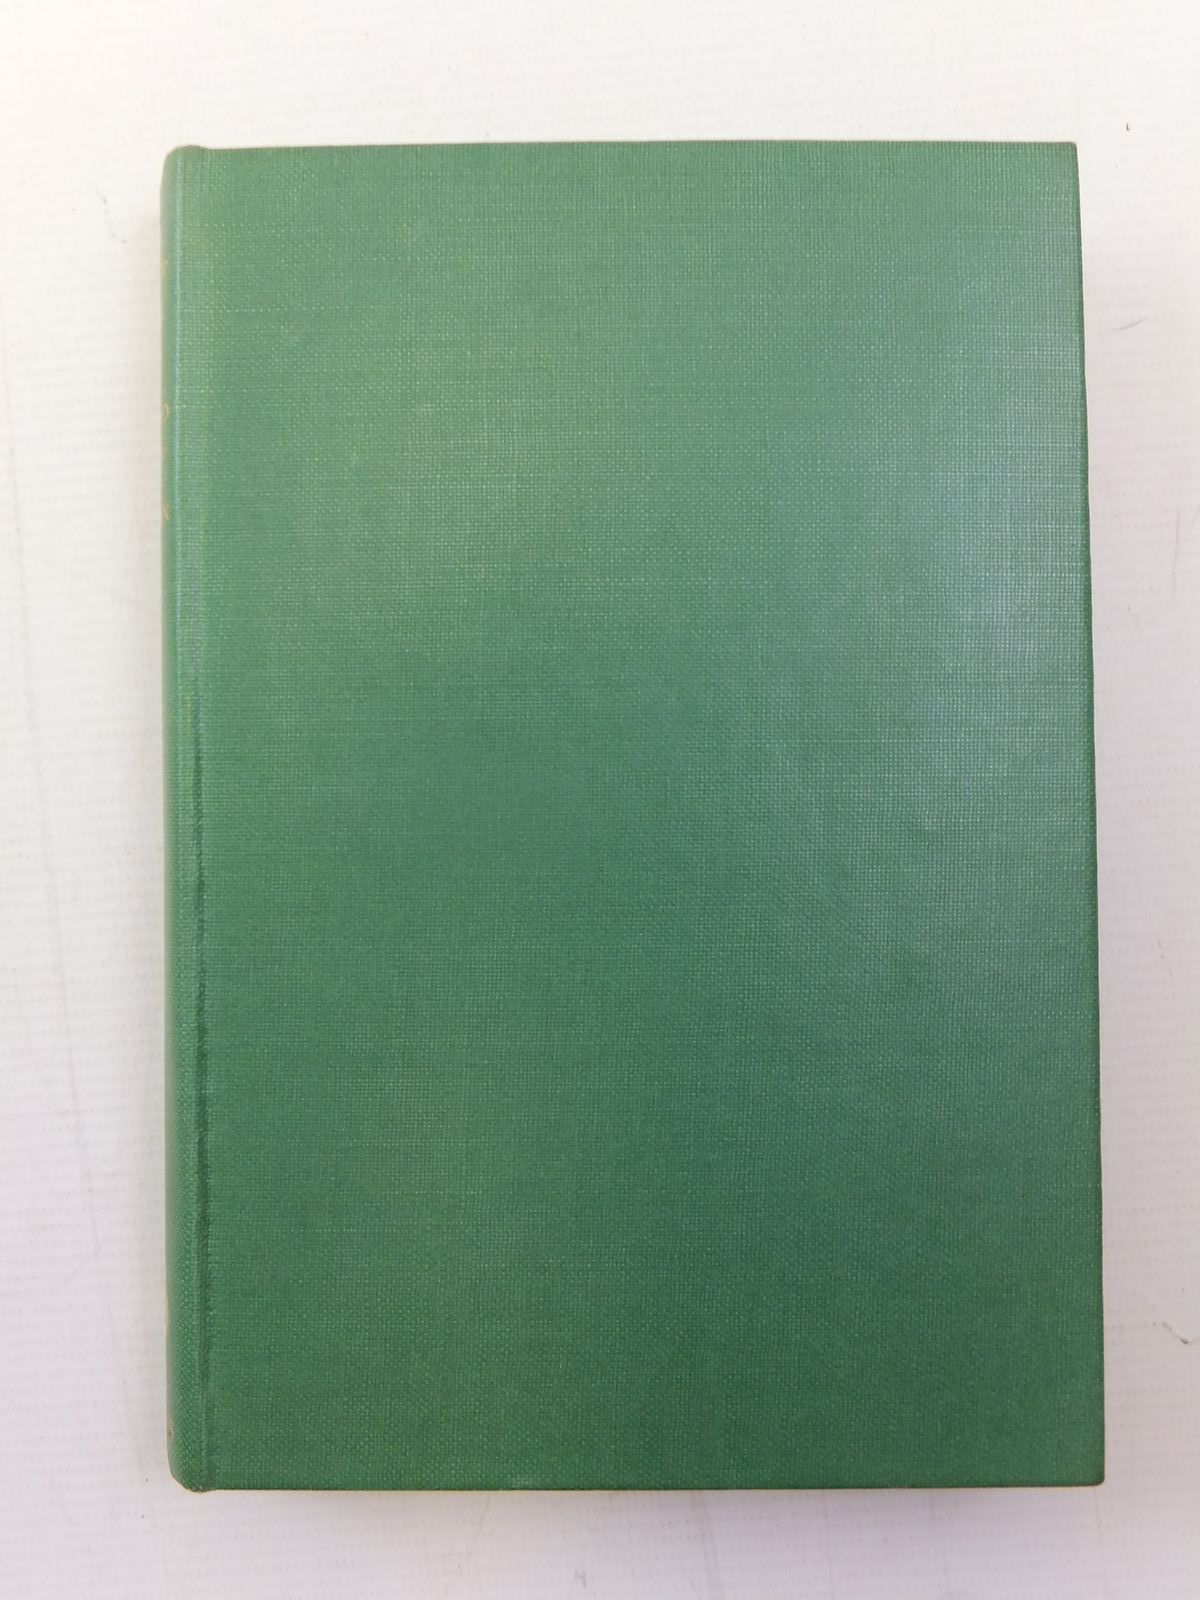 Photo of THE GREENSHANK (NMN 5) written by Nethersole-Thompson, Desmond published by Collins (STOCK CODE: 2116239)  for sale by Stella & Rose's Books